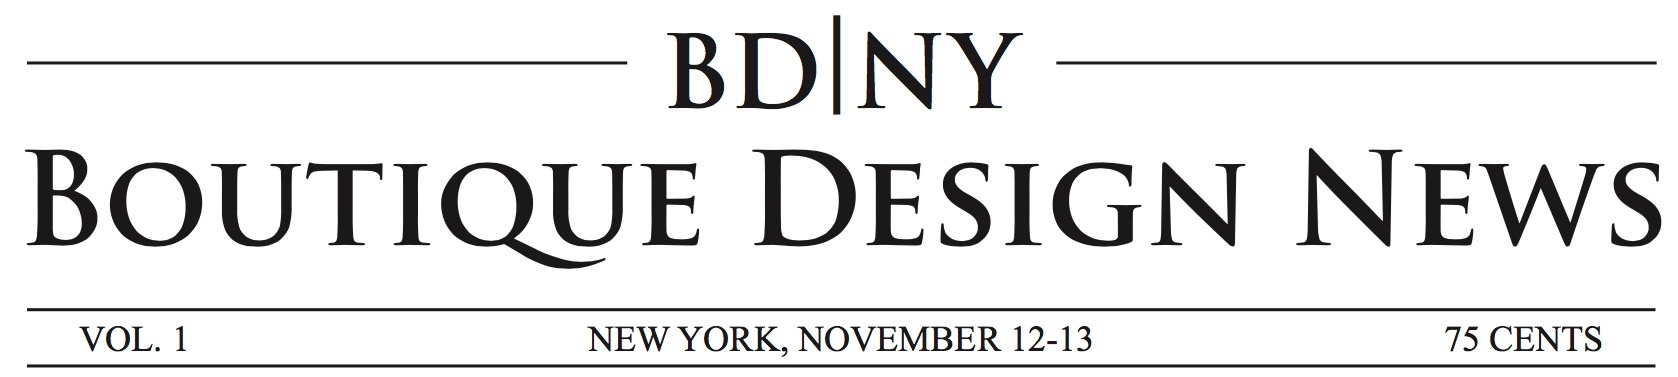 BD|NY - BDNY Boutique Design Trade Fair Newspaper